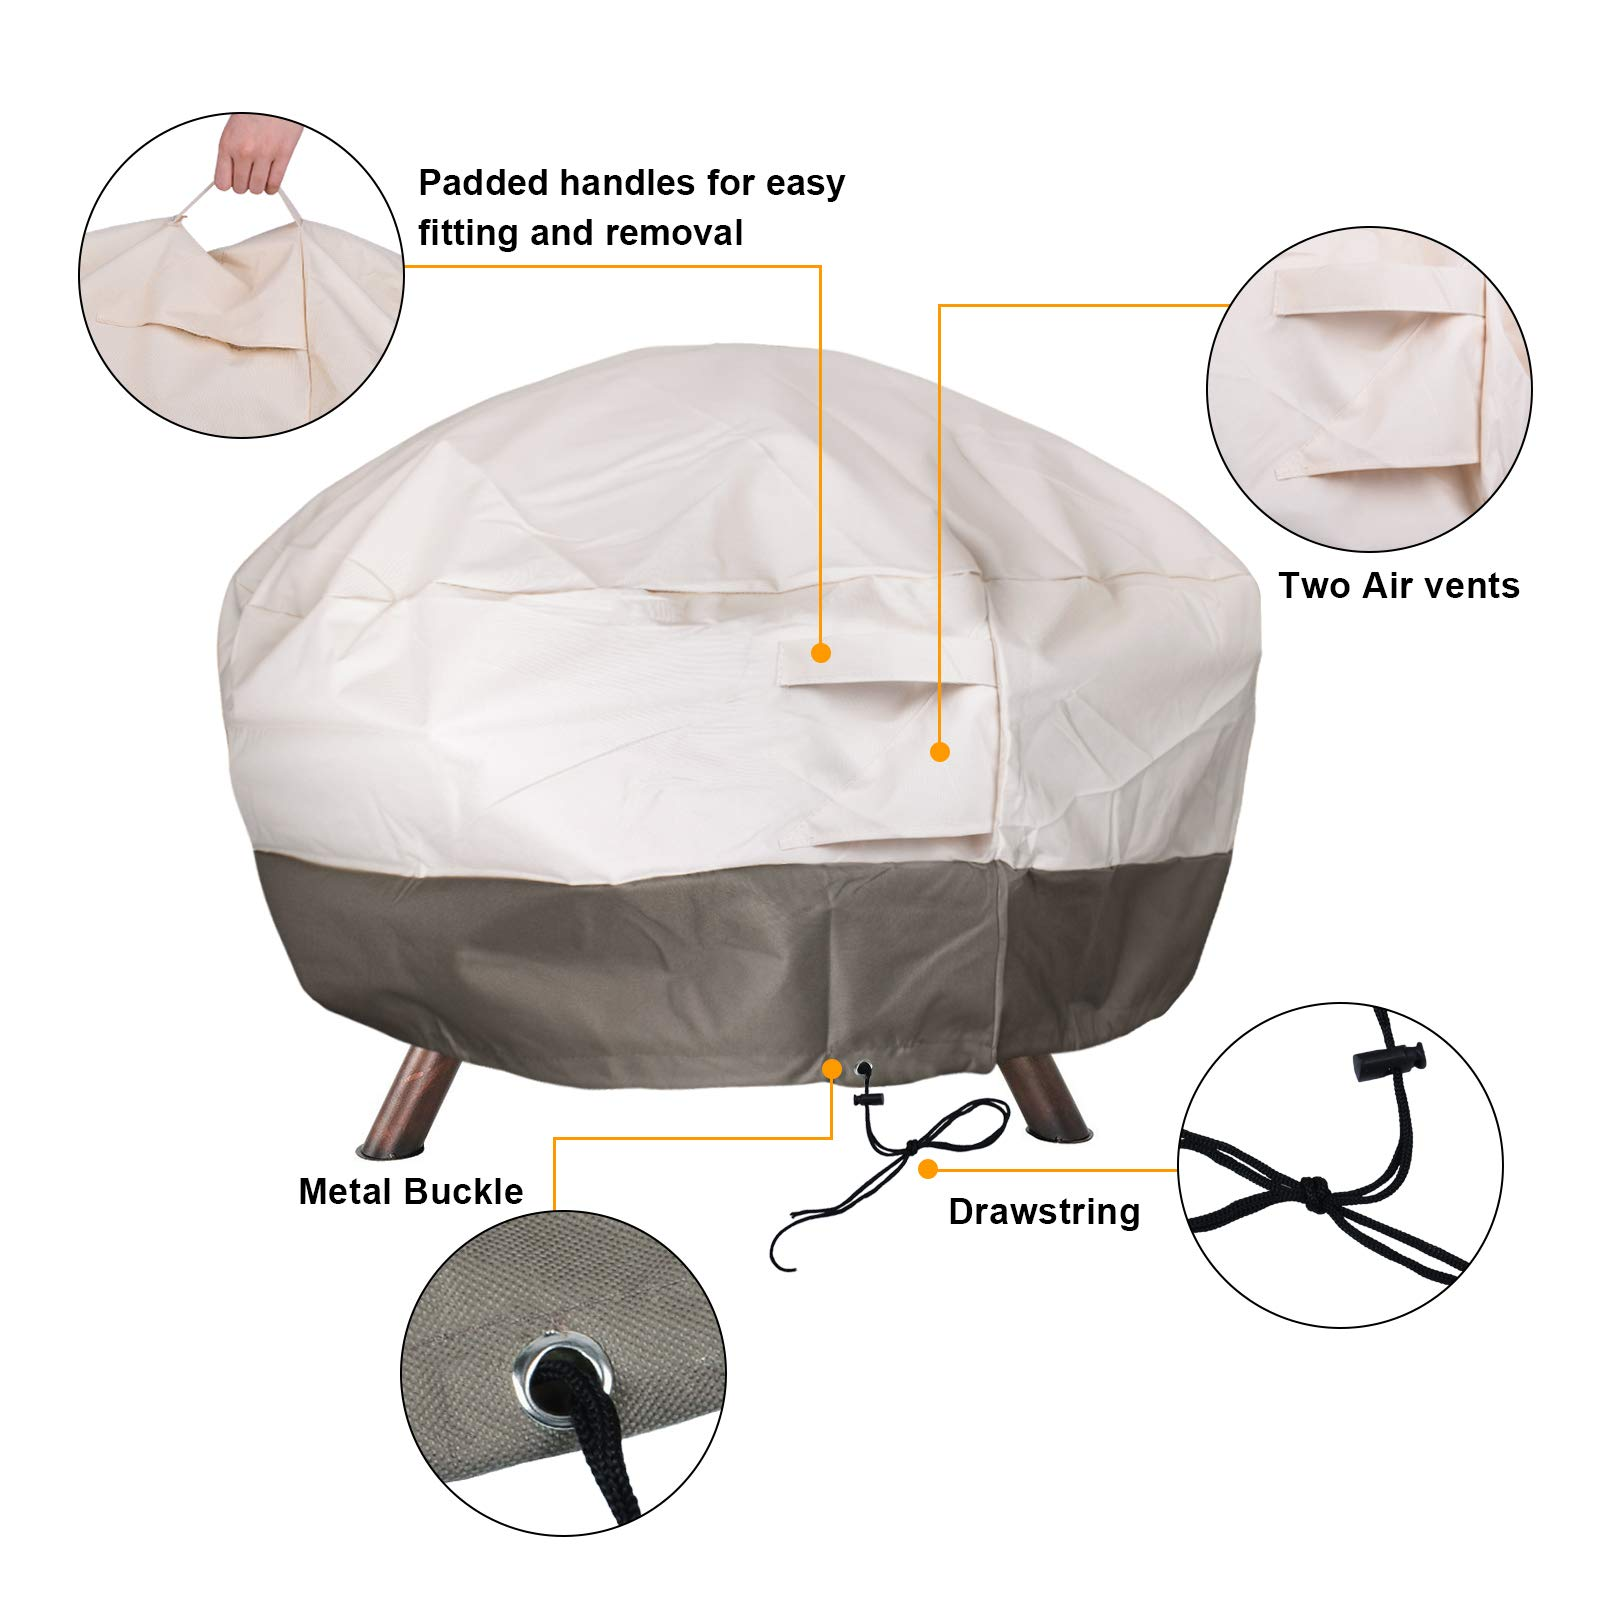 MIXC 91cm Round Fire Pit Cover Waterproof Heavy Duty 600D Thick Large Deluxe Oxford Weather Resistant Protective Outdoor Fire Bowl Cover Air Vents and Elastic Hem UV Protected for Garden BBQs Patio Sets with Bag and Fire Poker